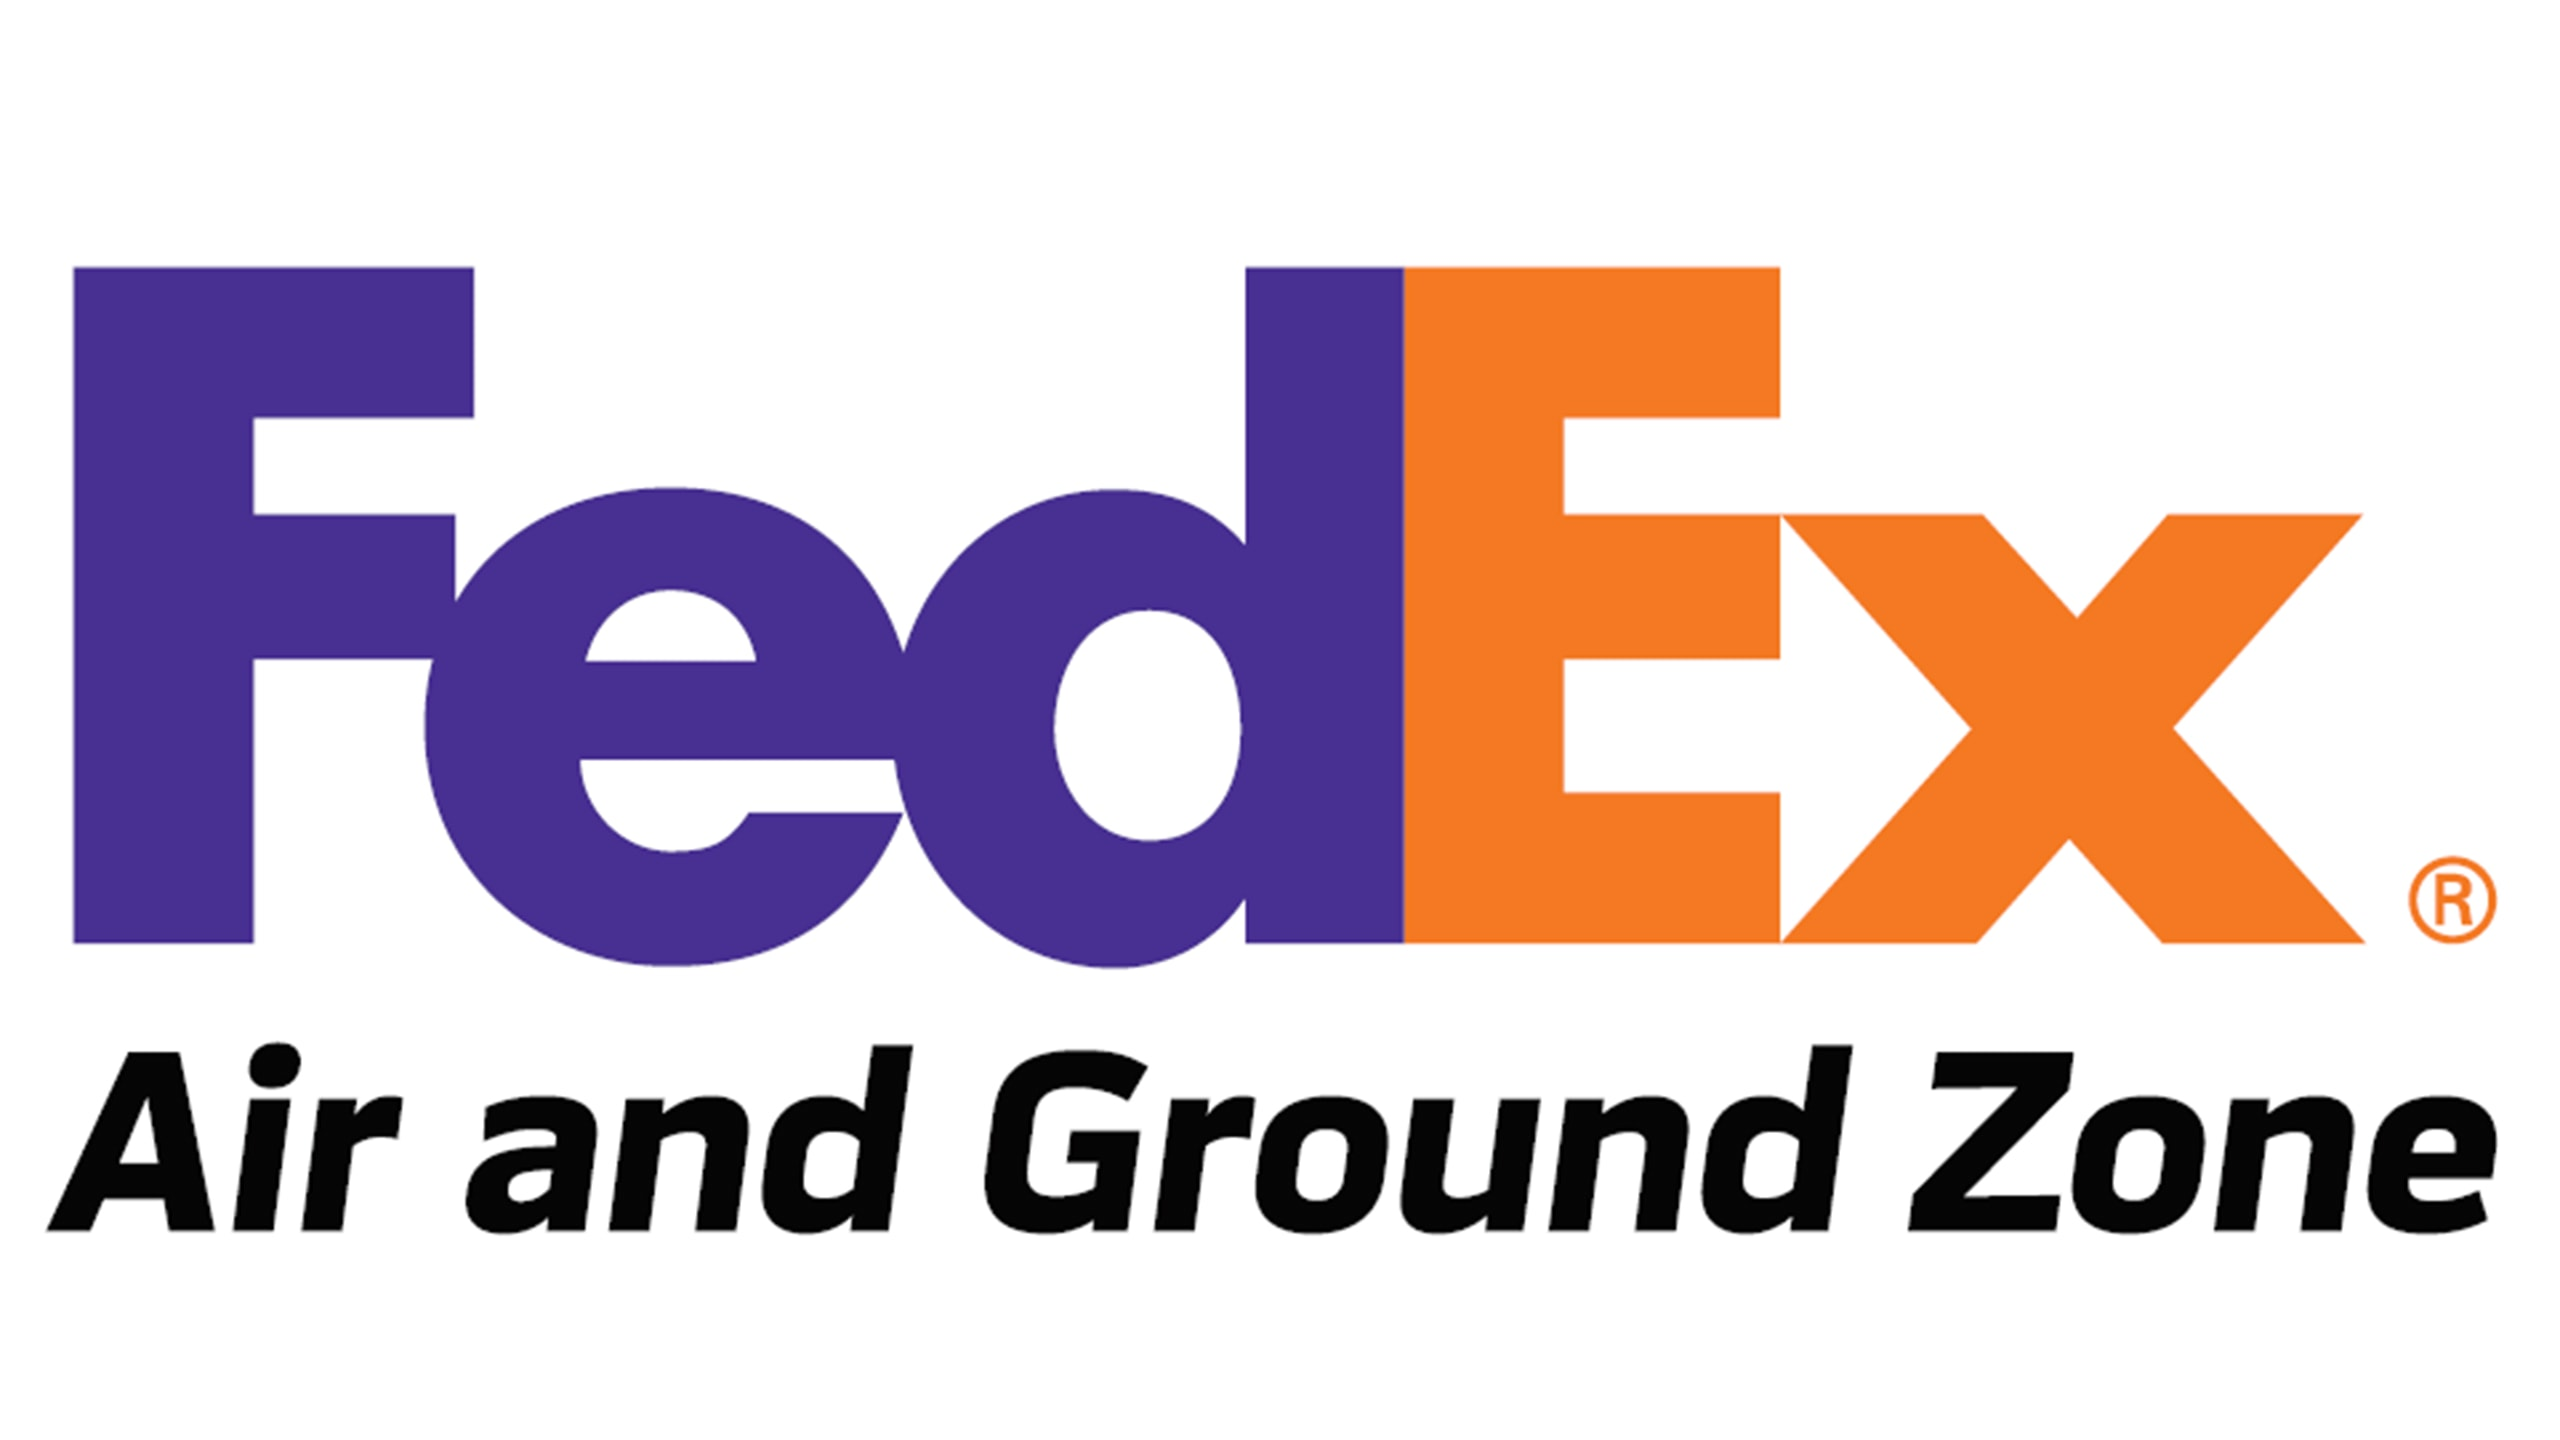 FedEx Air and Ground Zone